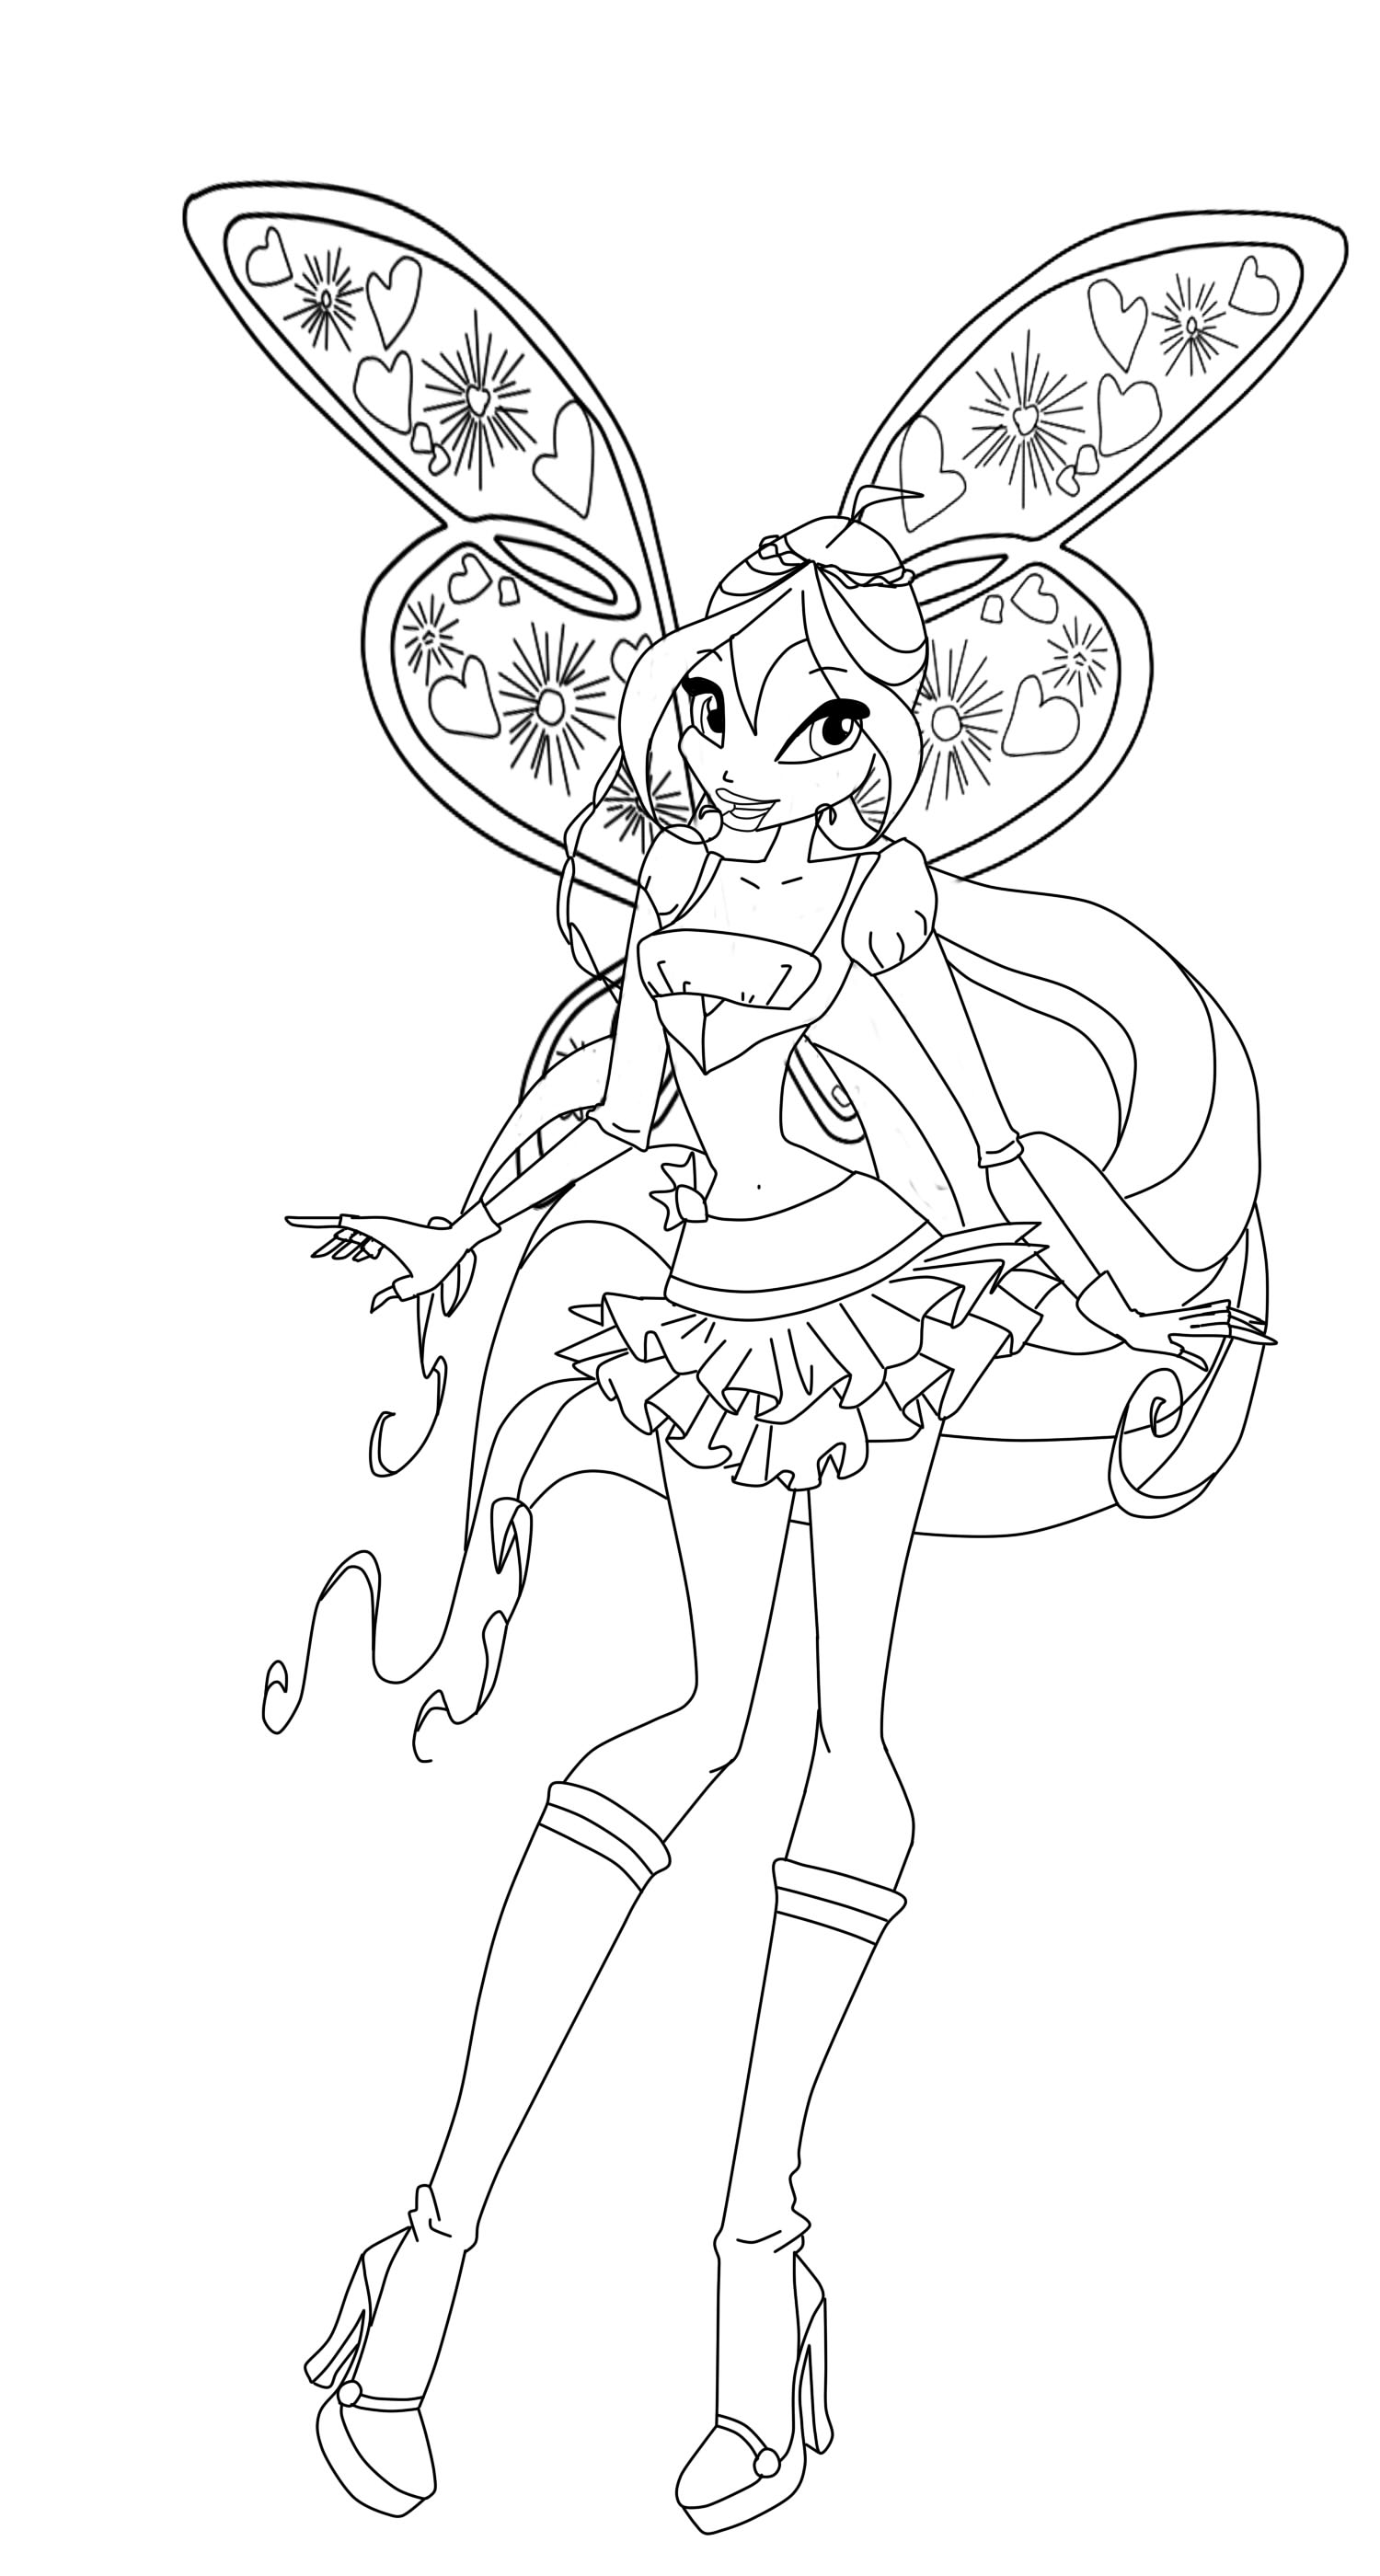 Bloom by werunchick on deviantart for Bloom winx coloring pages